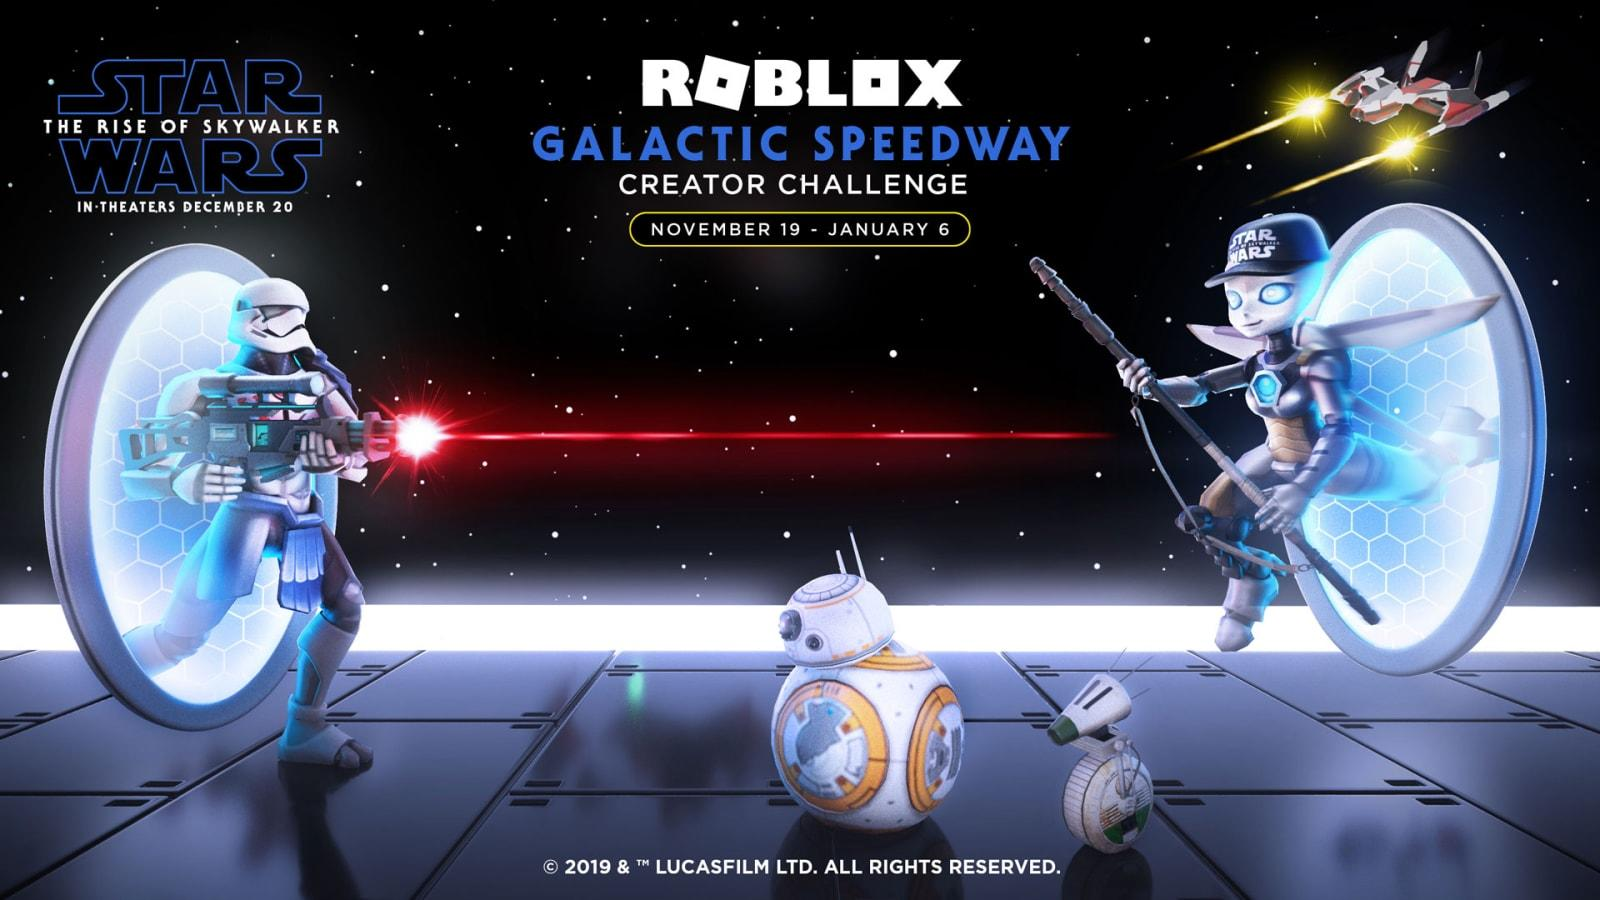 Roblox Building A Game Timelapse Roblox Wants You To Build Star Wars Speeder To Celebrate Rise Of Skywalker Engadget